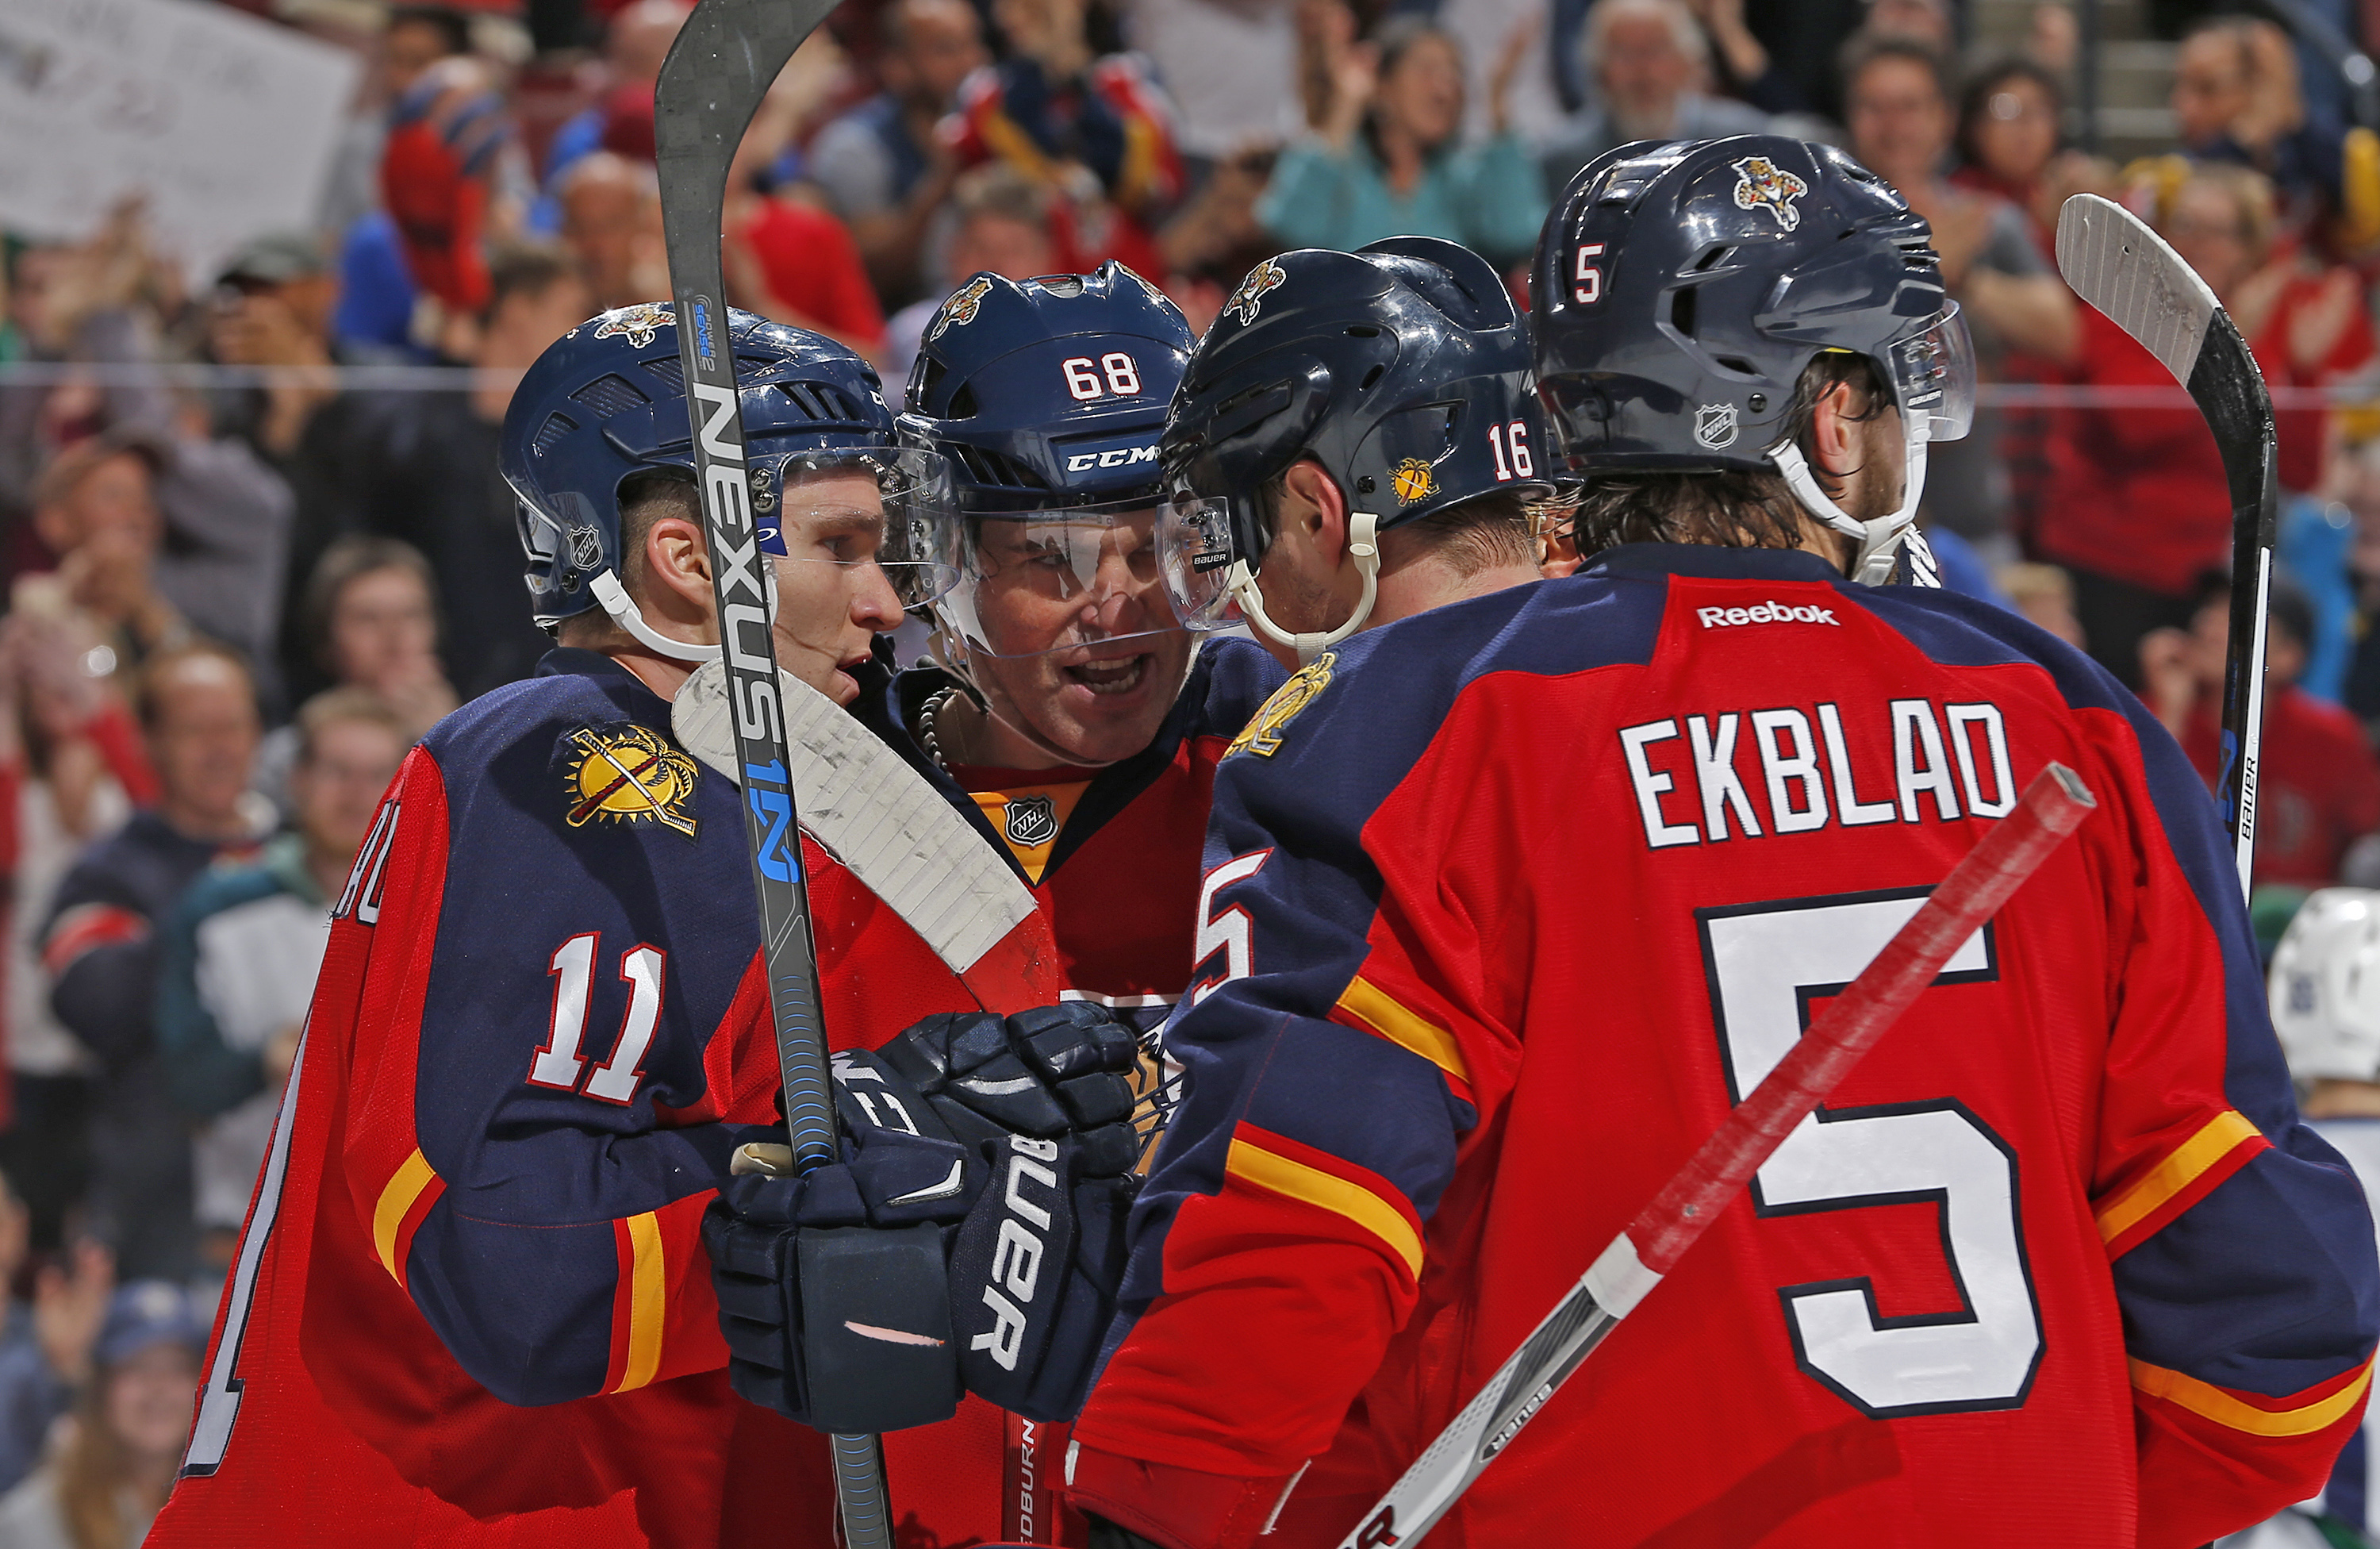 Florida Panthers forward Jaromir Jagr (68) is congratulated by forward Aleksander Barkov (16) and forward Jonathan Huberdeau (11) after scoring the go-ahead goal during the first period of an NHL hockey game against the Vancouver Canucks, Sunday, Dec. 20,